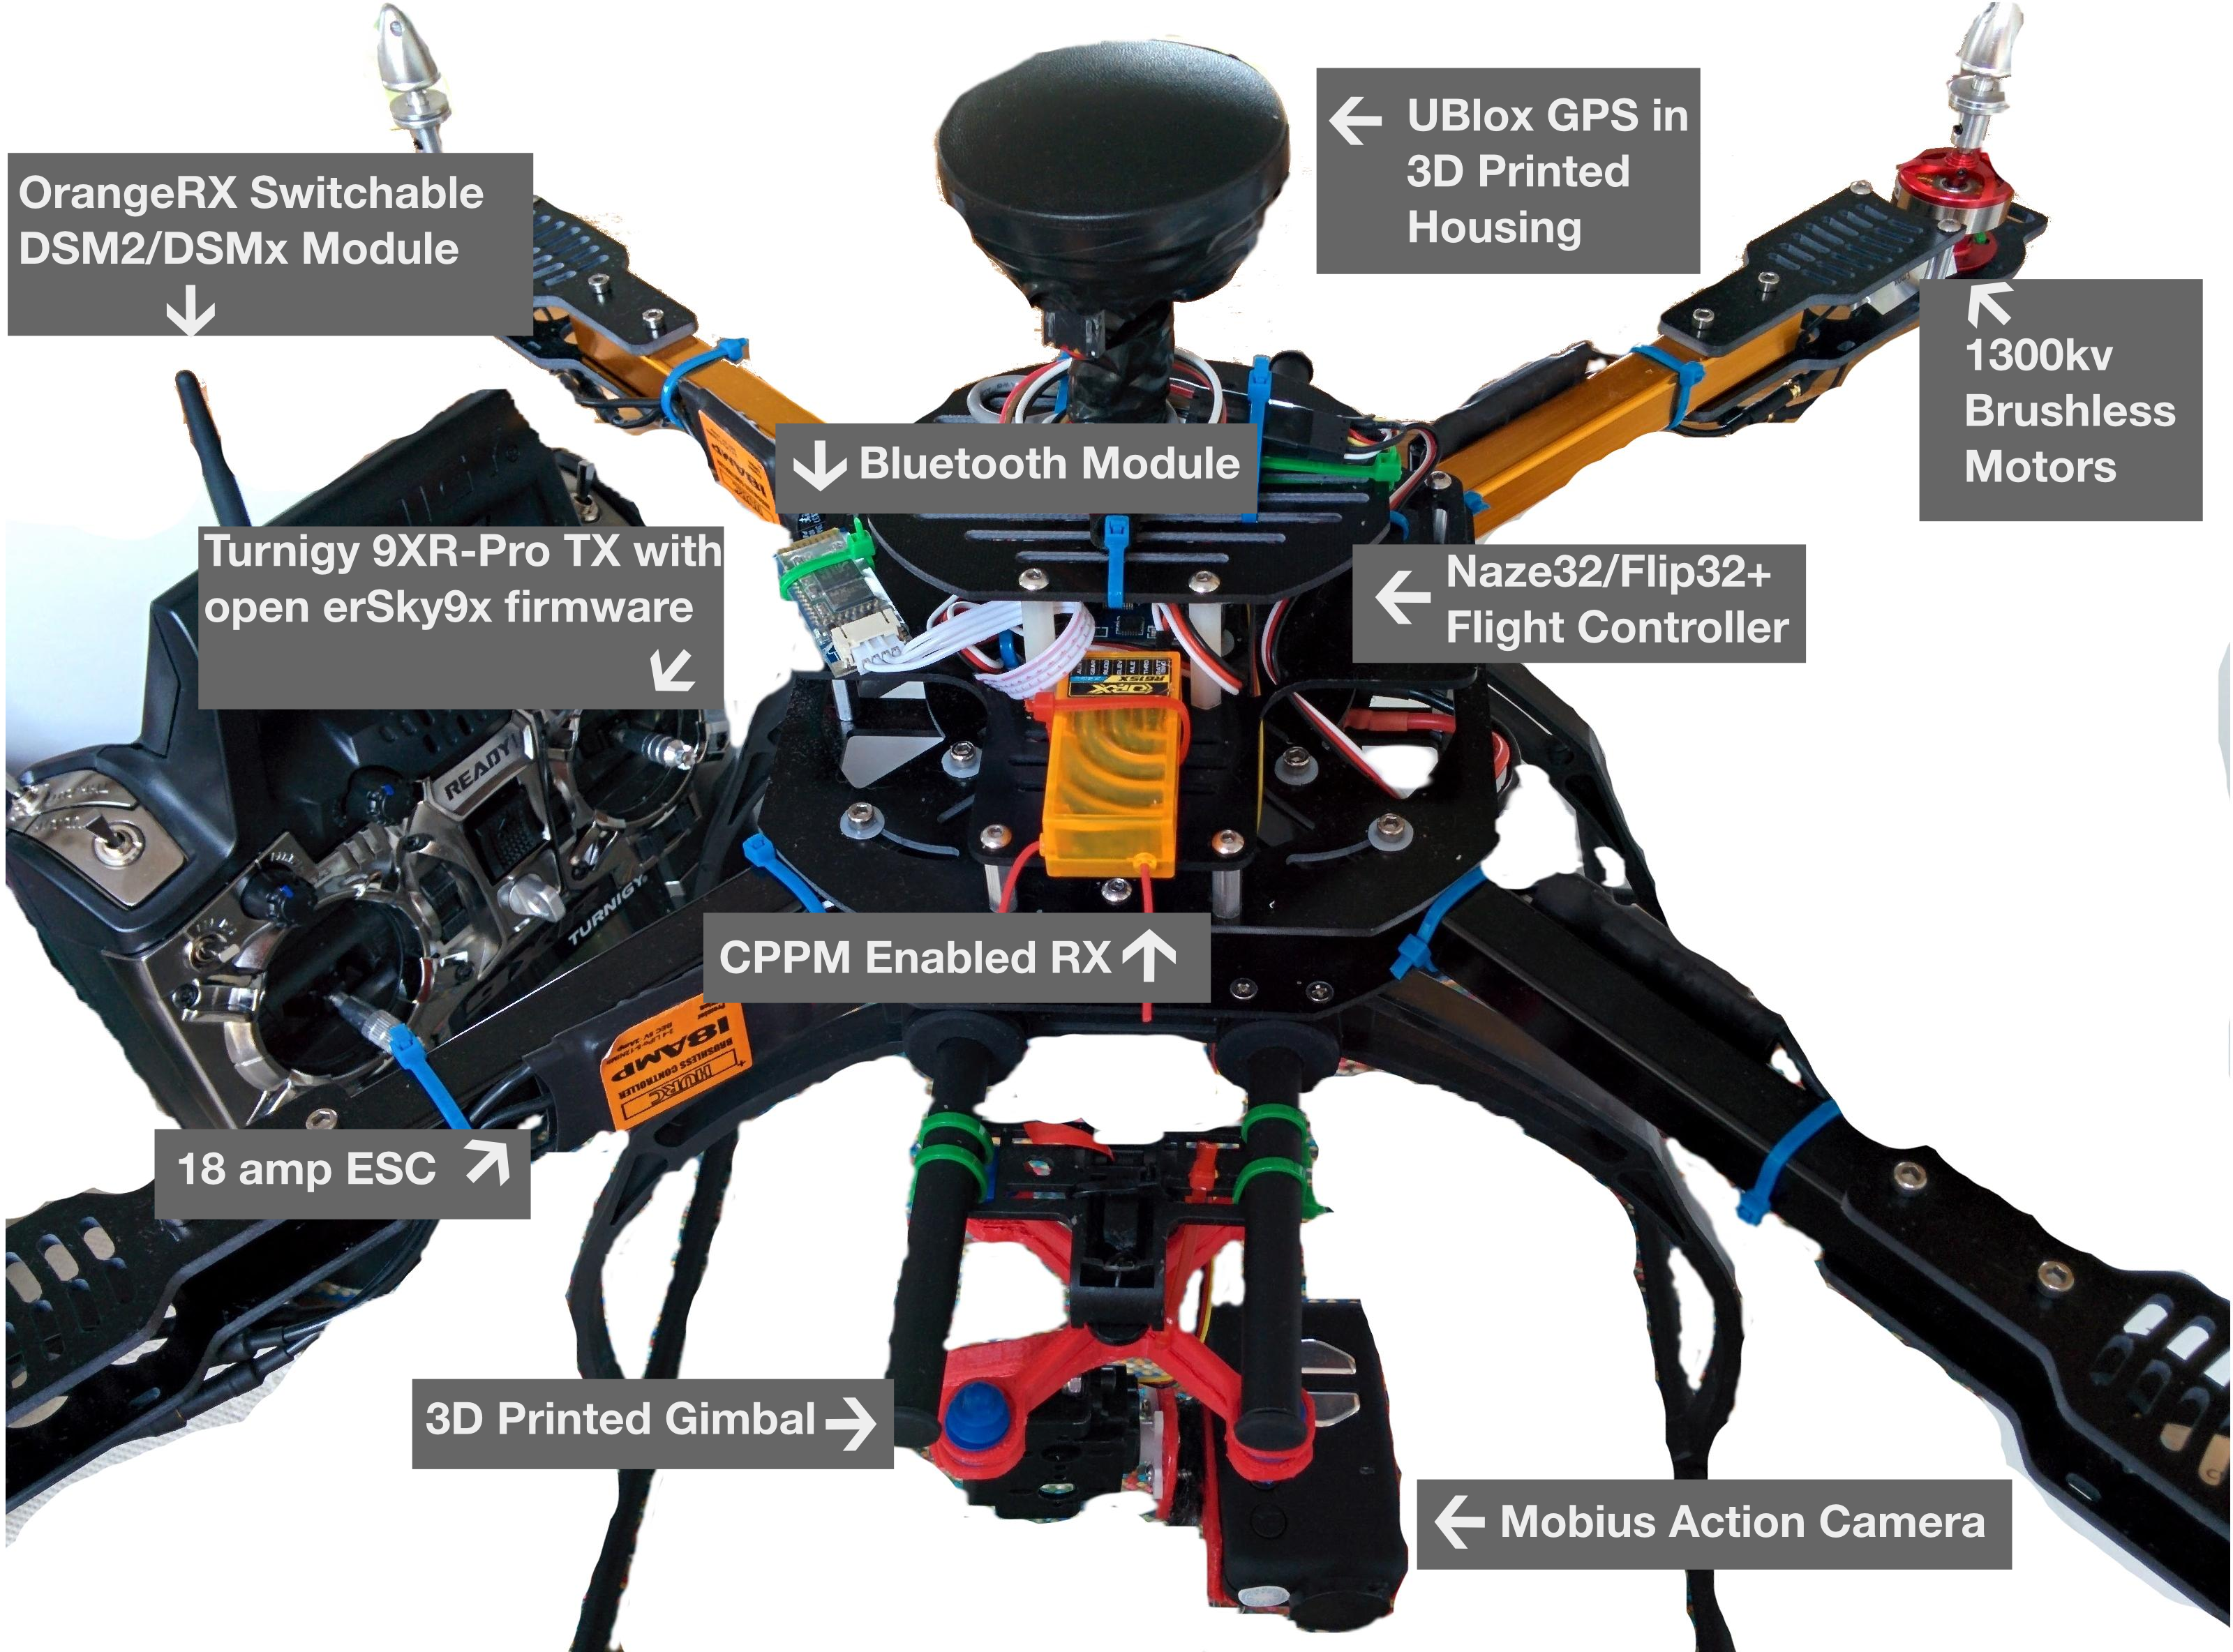 able drone with Aerial Mapping Drone For Under 60 on Varavon Wirecam Cable Cam System With Dji Ronin M Gimbal also Pixhawk update in addition 1 Space Marine Vs 1 Sentinel Matrix Verse further Ork Land Cannon Conversion Corner moreover Black spur drive victoria.